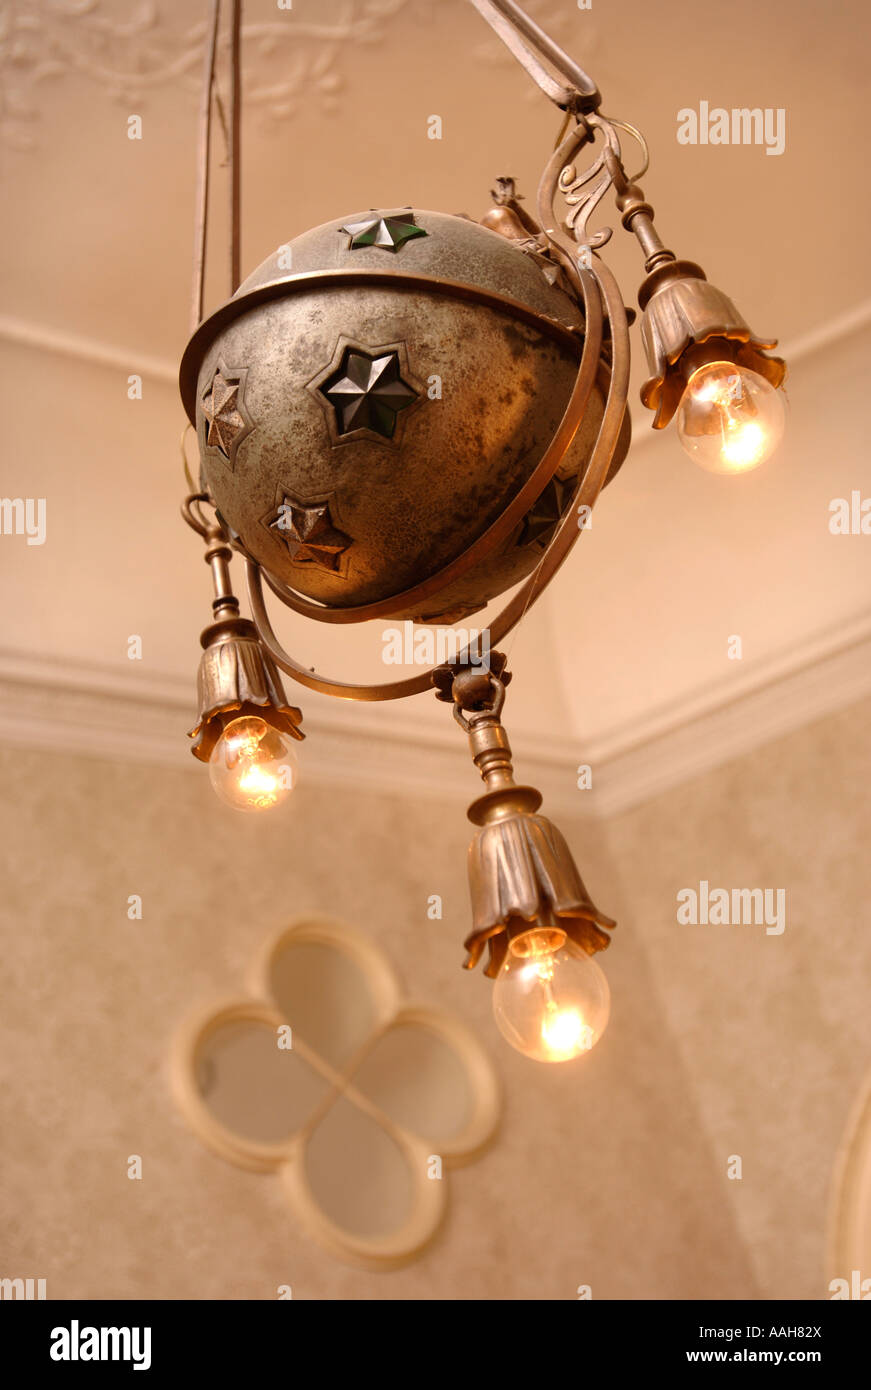 AN UNUSUAL CHANDELIER WITH THREE LIGHT BULBS UK Stock Photo ...